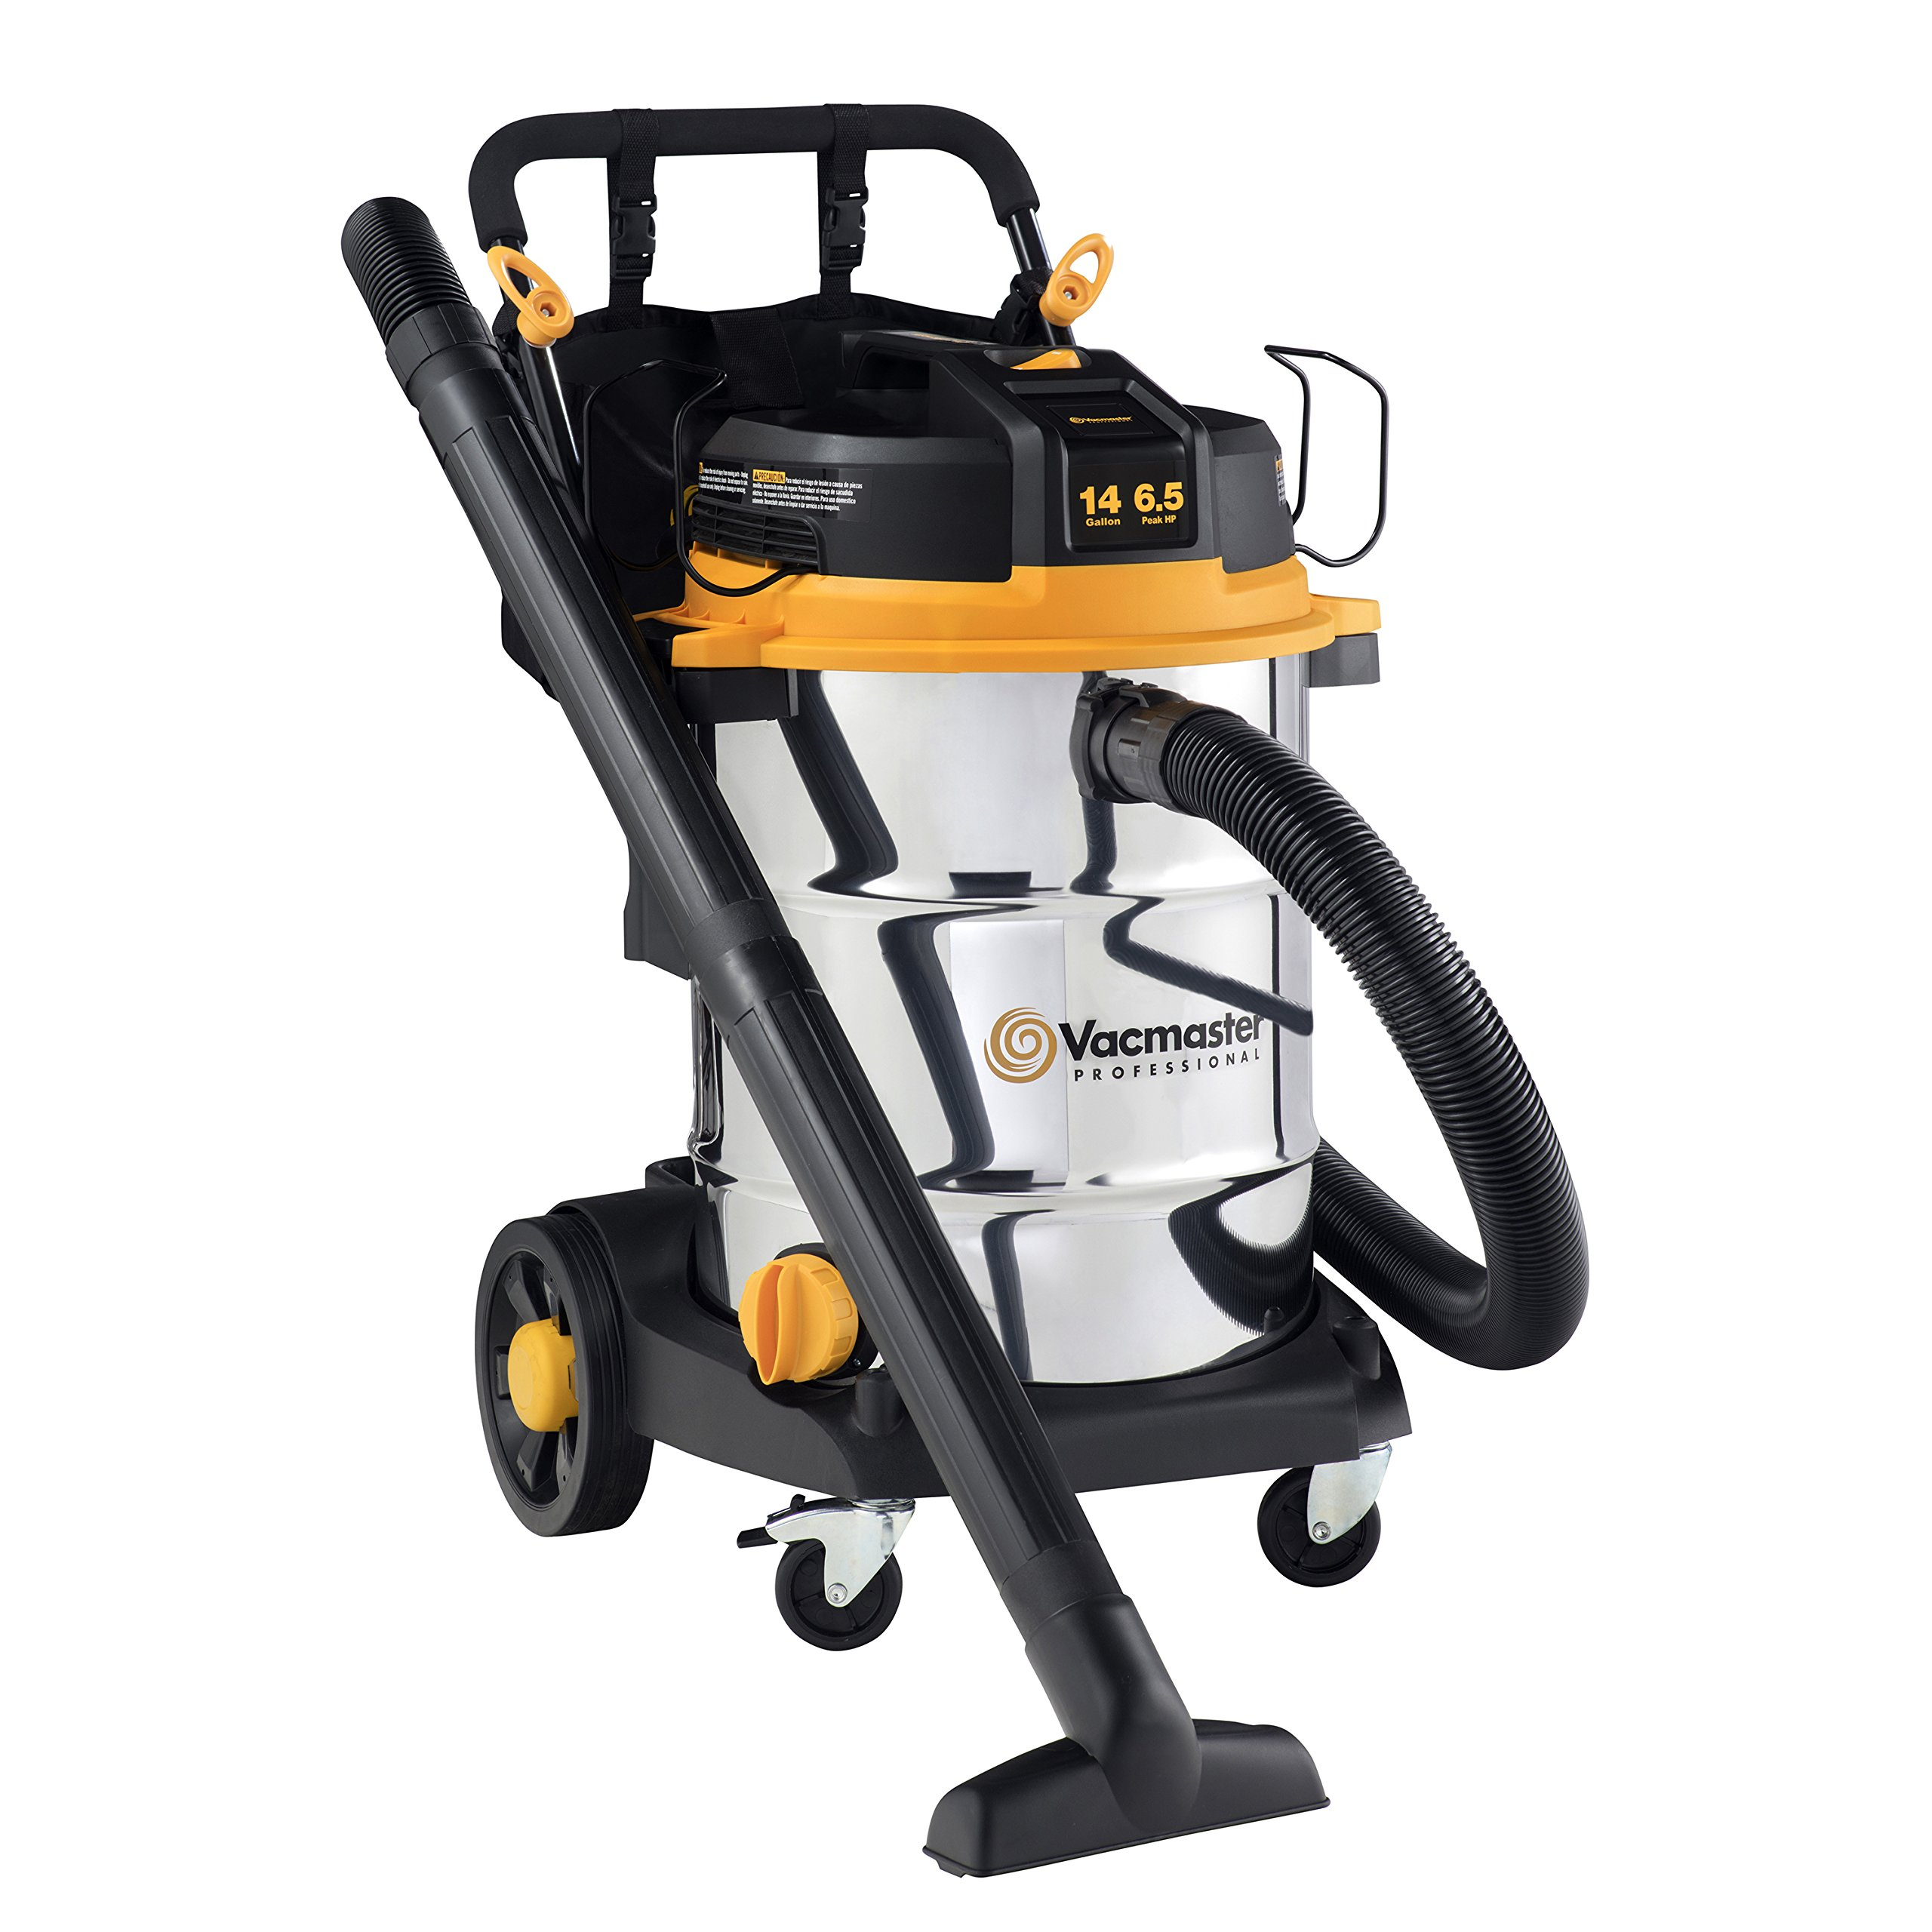 Vacmaster - Beast Professional Series 14 Gal. 6.5 HP Steel Tank Wet/Dry Vac with Cart (VJE1412SW0201) by Vacmaster (Image #1)